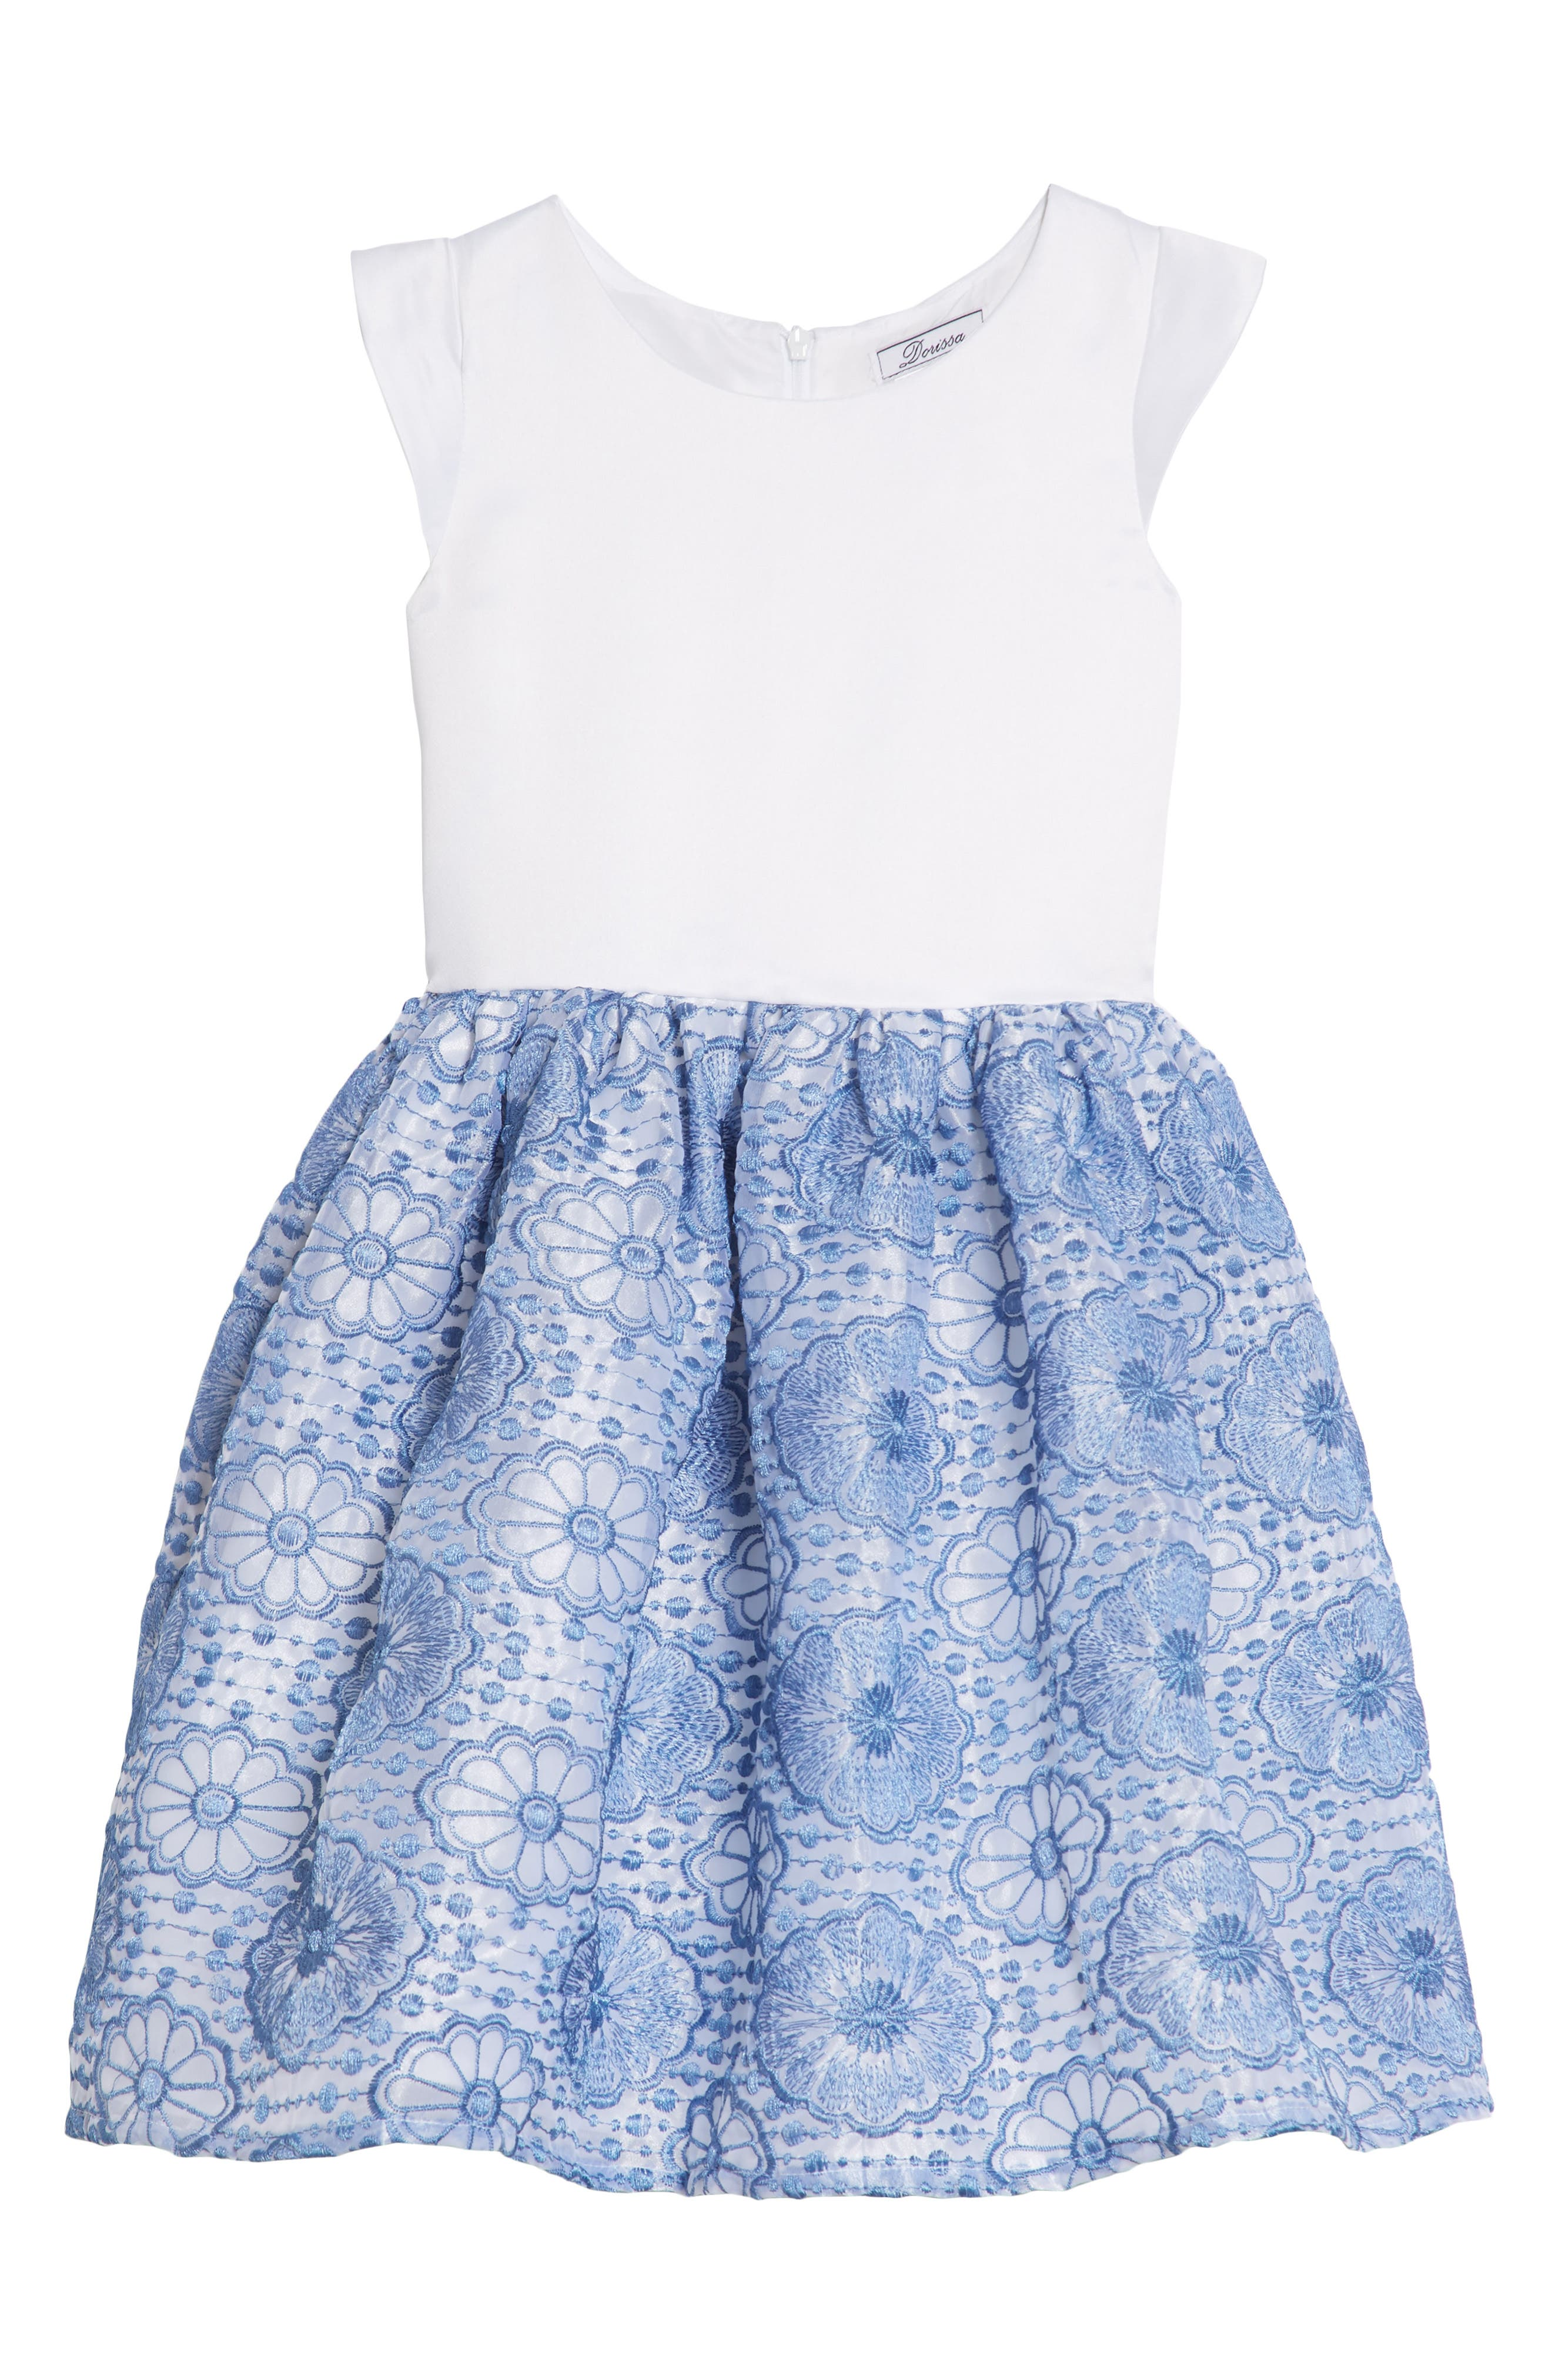 Lily Embroidered Dress,                         Main,                         color, White/ Blue